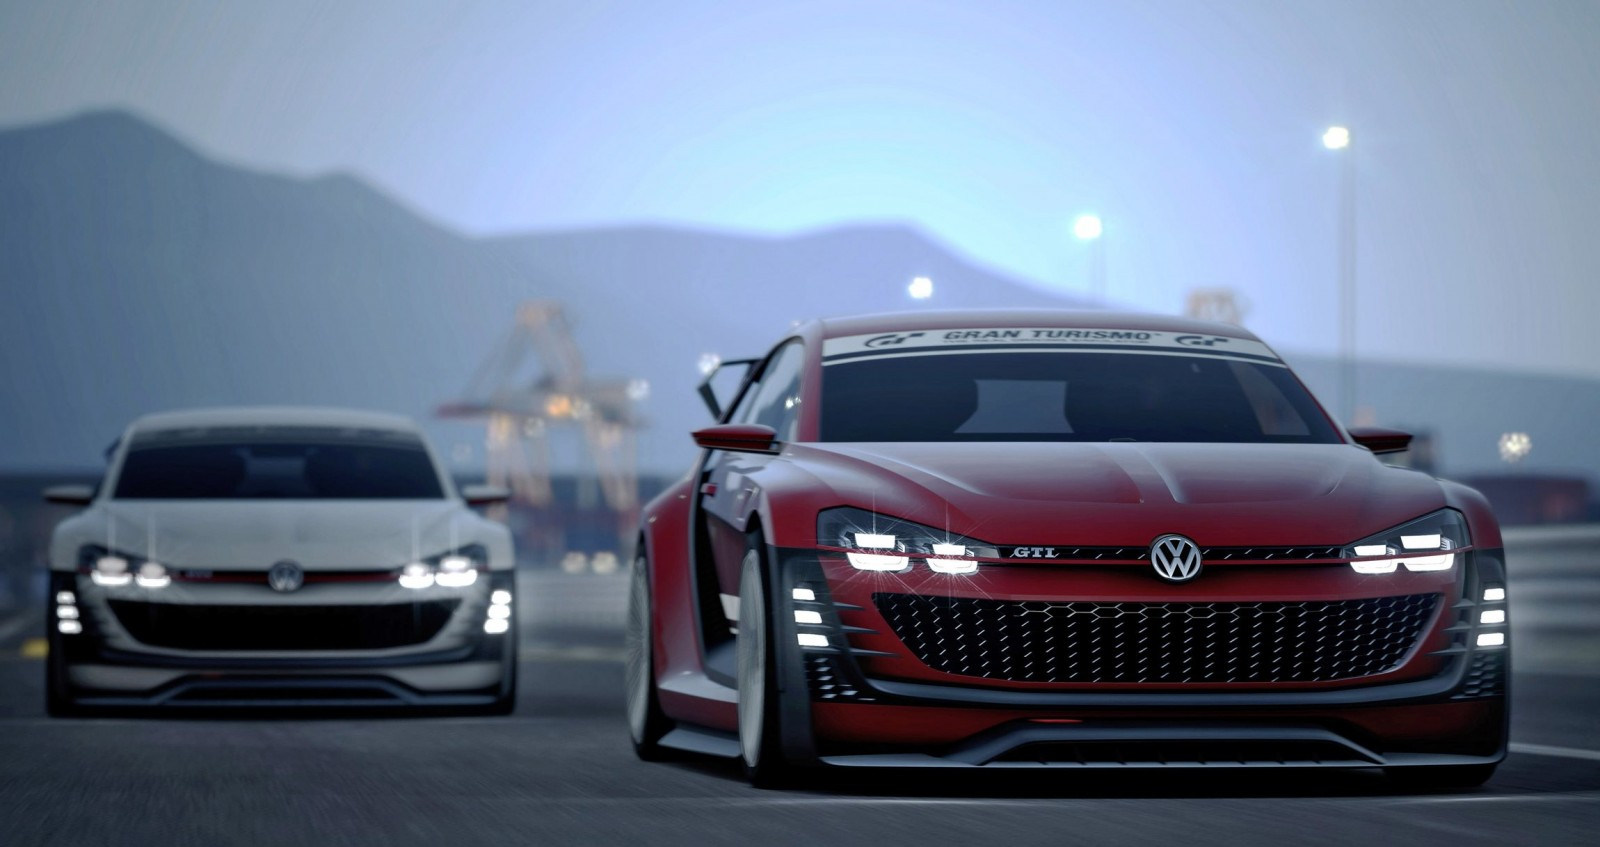 2015 Volkswagen GTI SuperSport 7